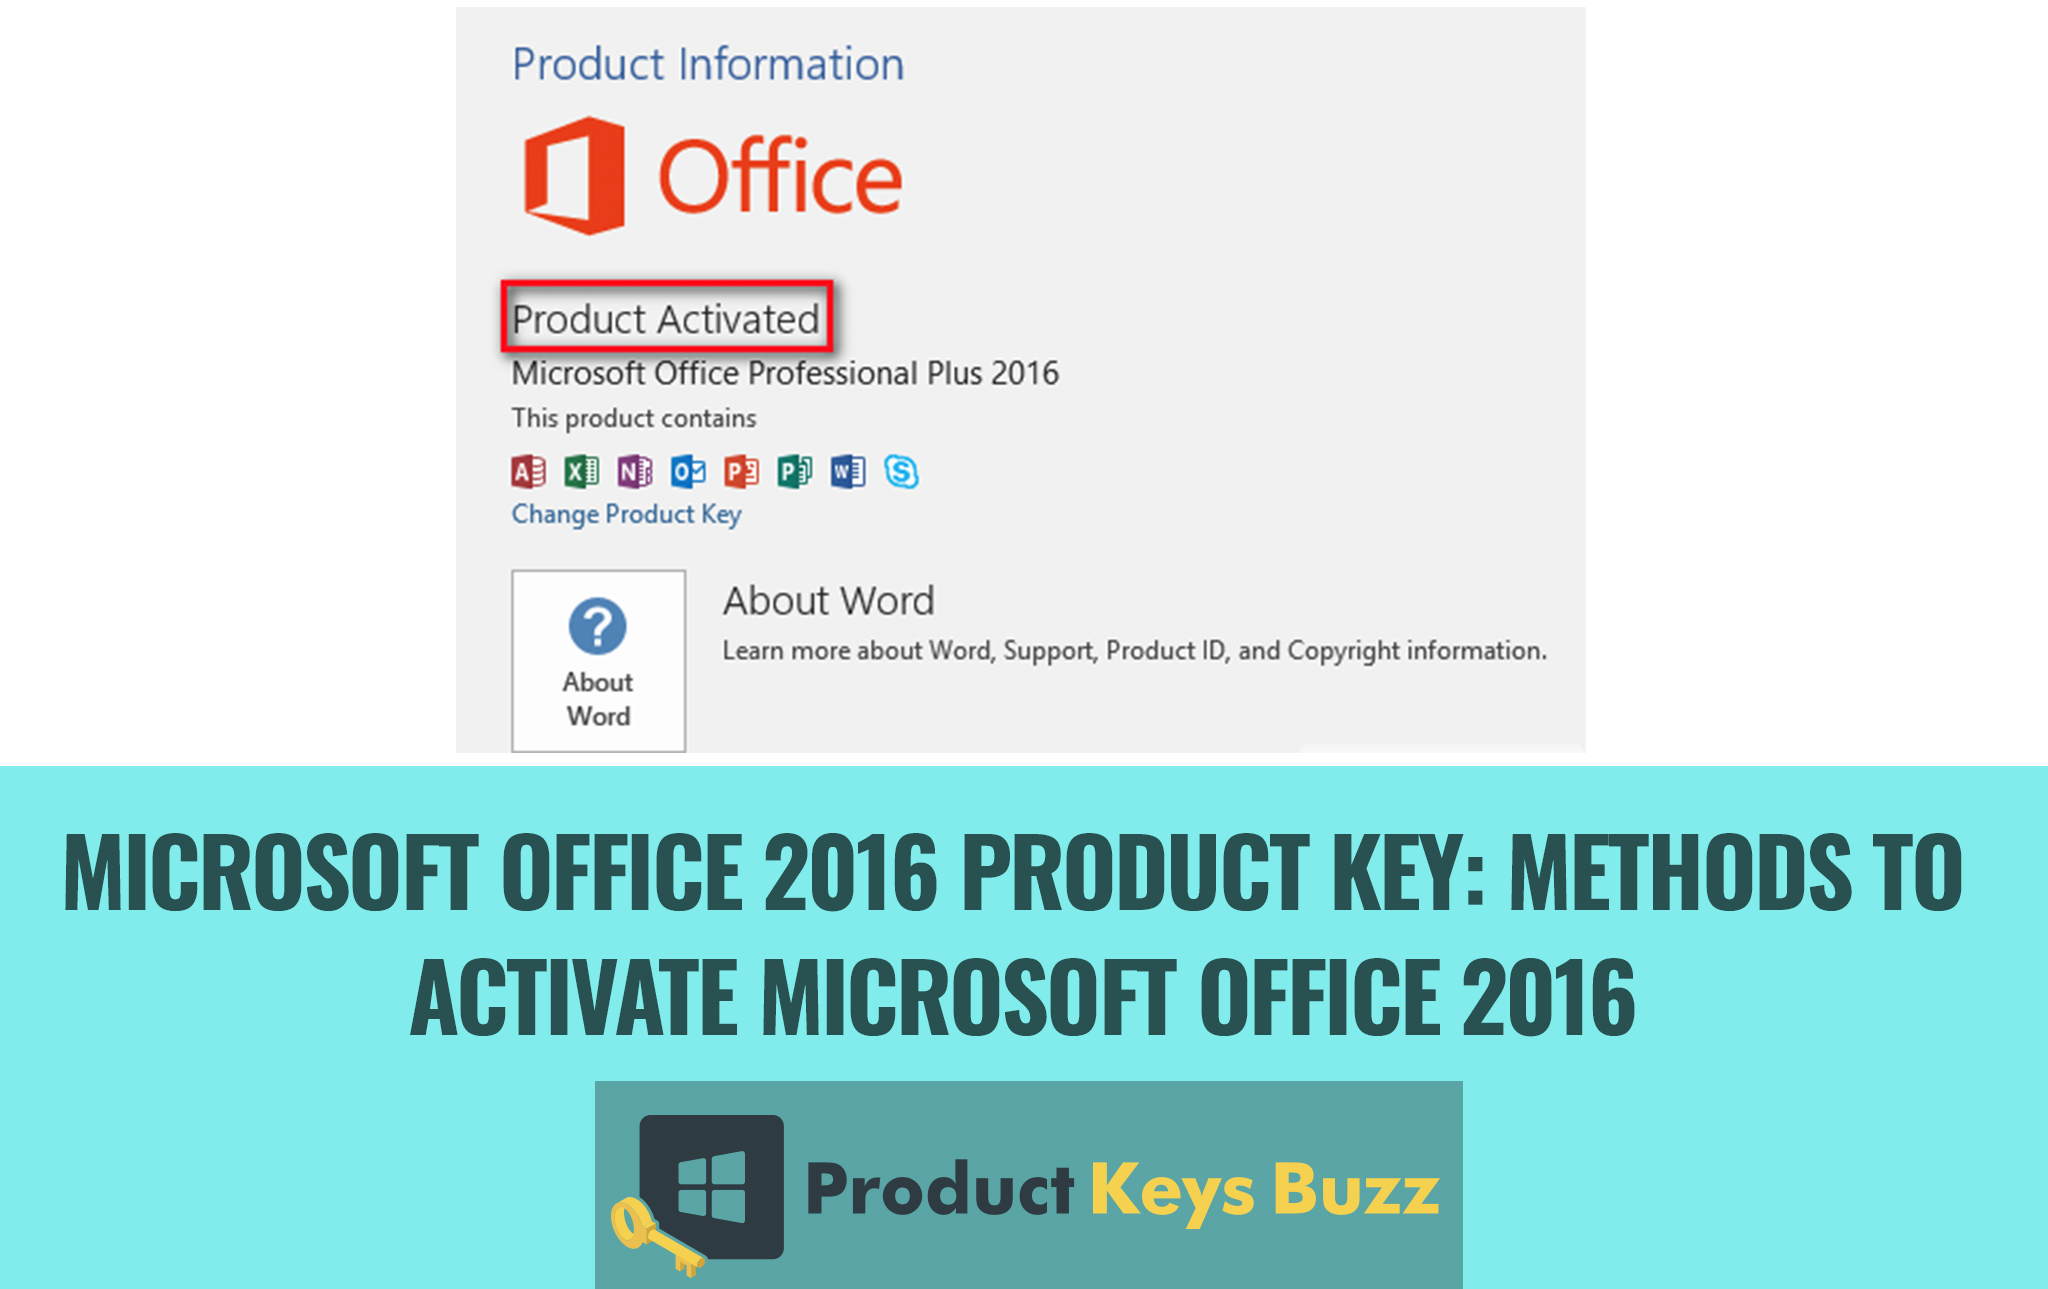 Veidrodis Maitinti Gyvybingumas Download Office 2016 Plus 64 Bit Yenanchen Com